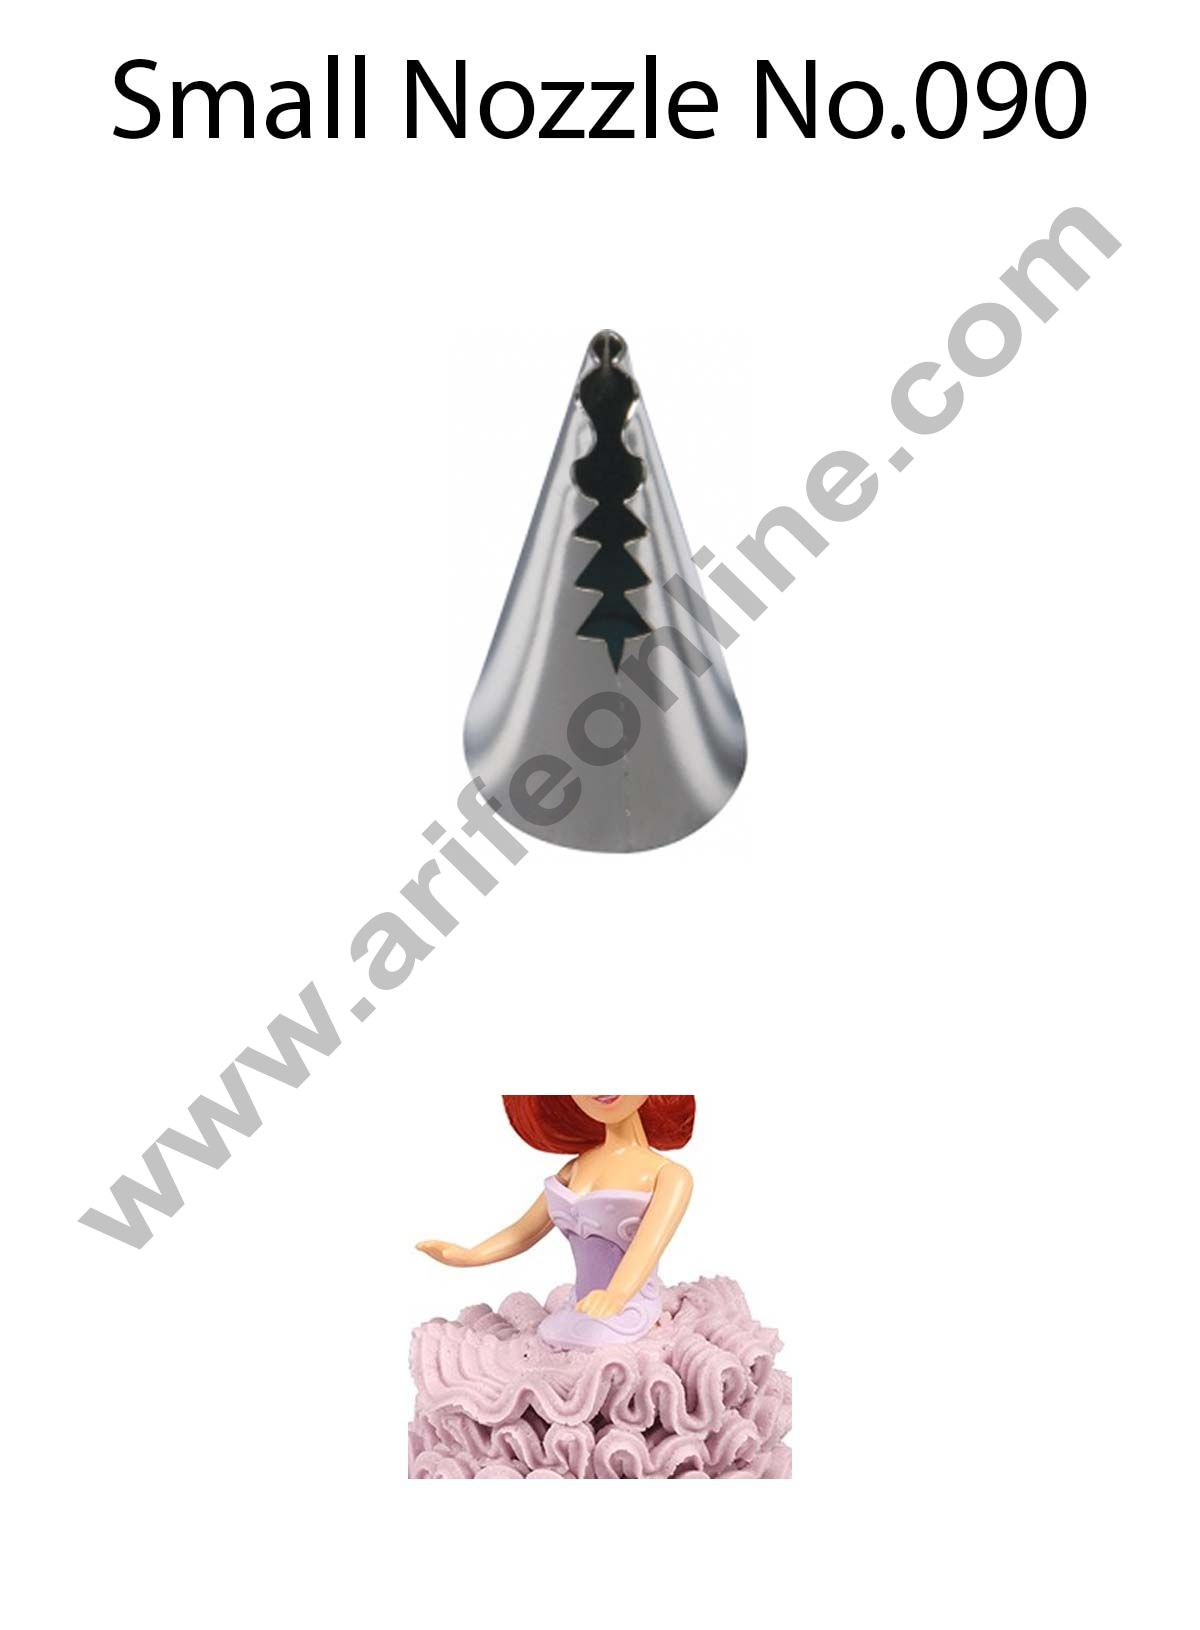 Cake Decor Small Nozzle - No. 090 Small Ruffle Frill Piping Nozzle